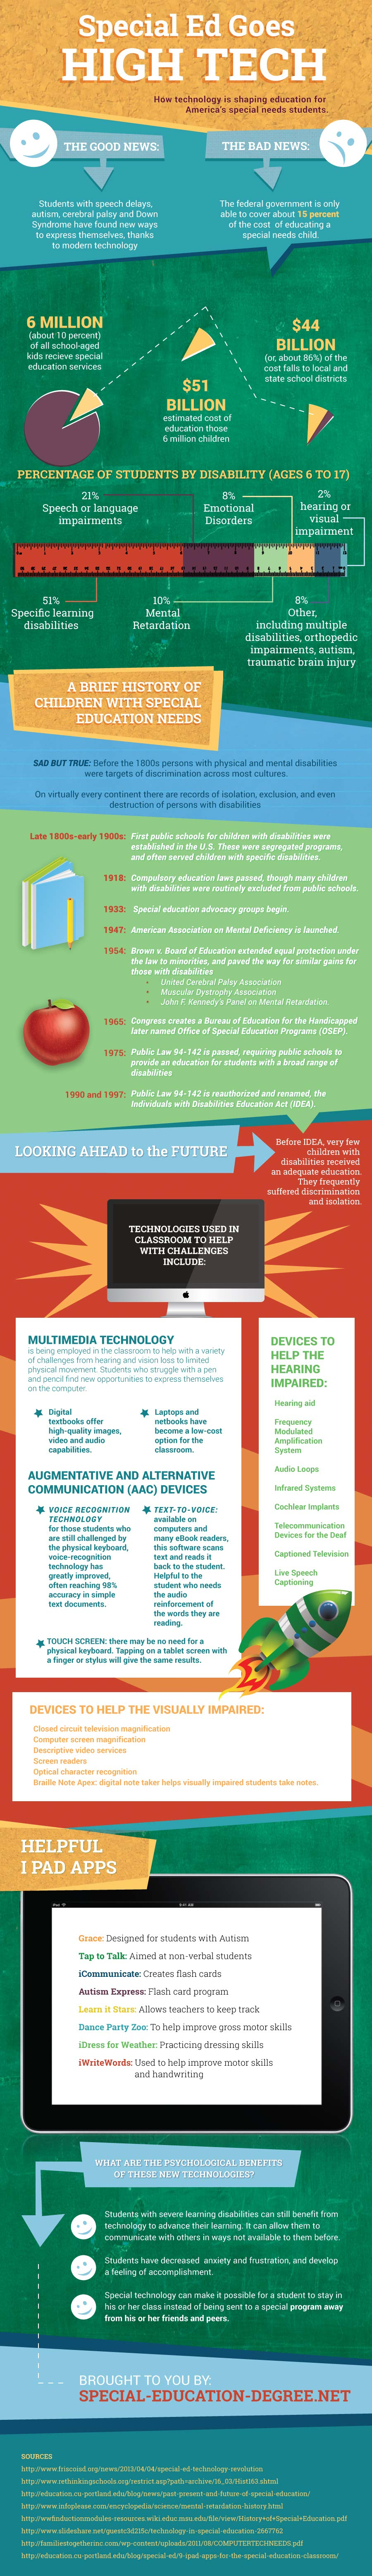 Technology in Special Education-Infographic